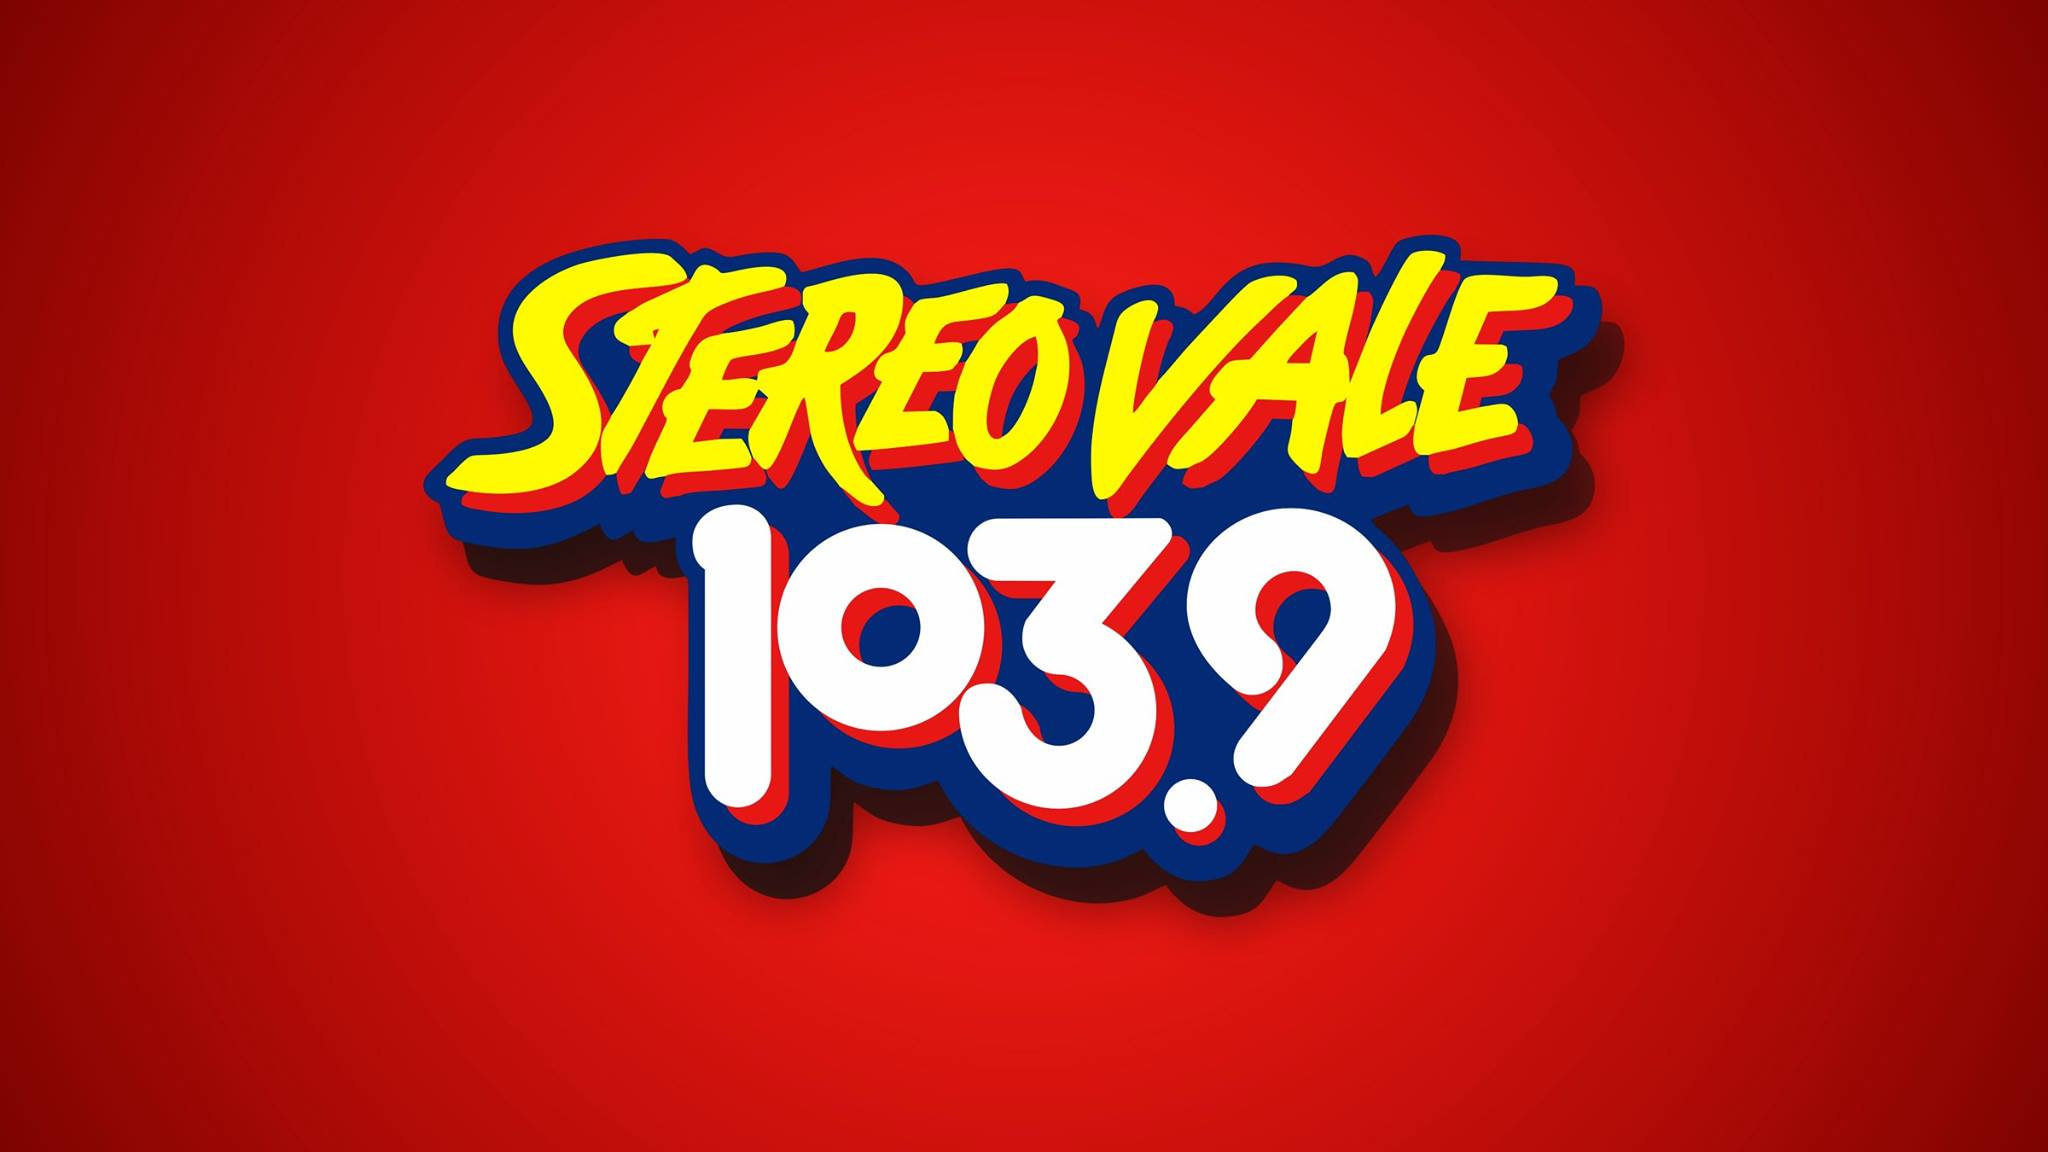 Stereo vale 103 9 fm 103 9 s o paulo listen online for 103 9 the fish